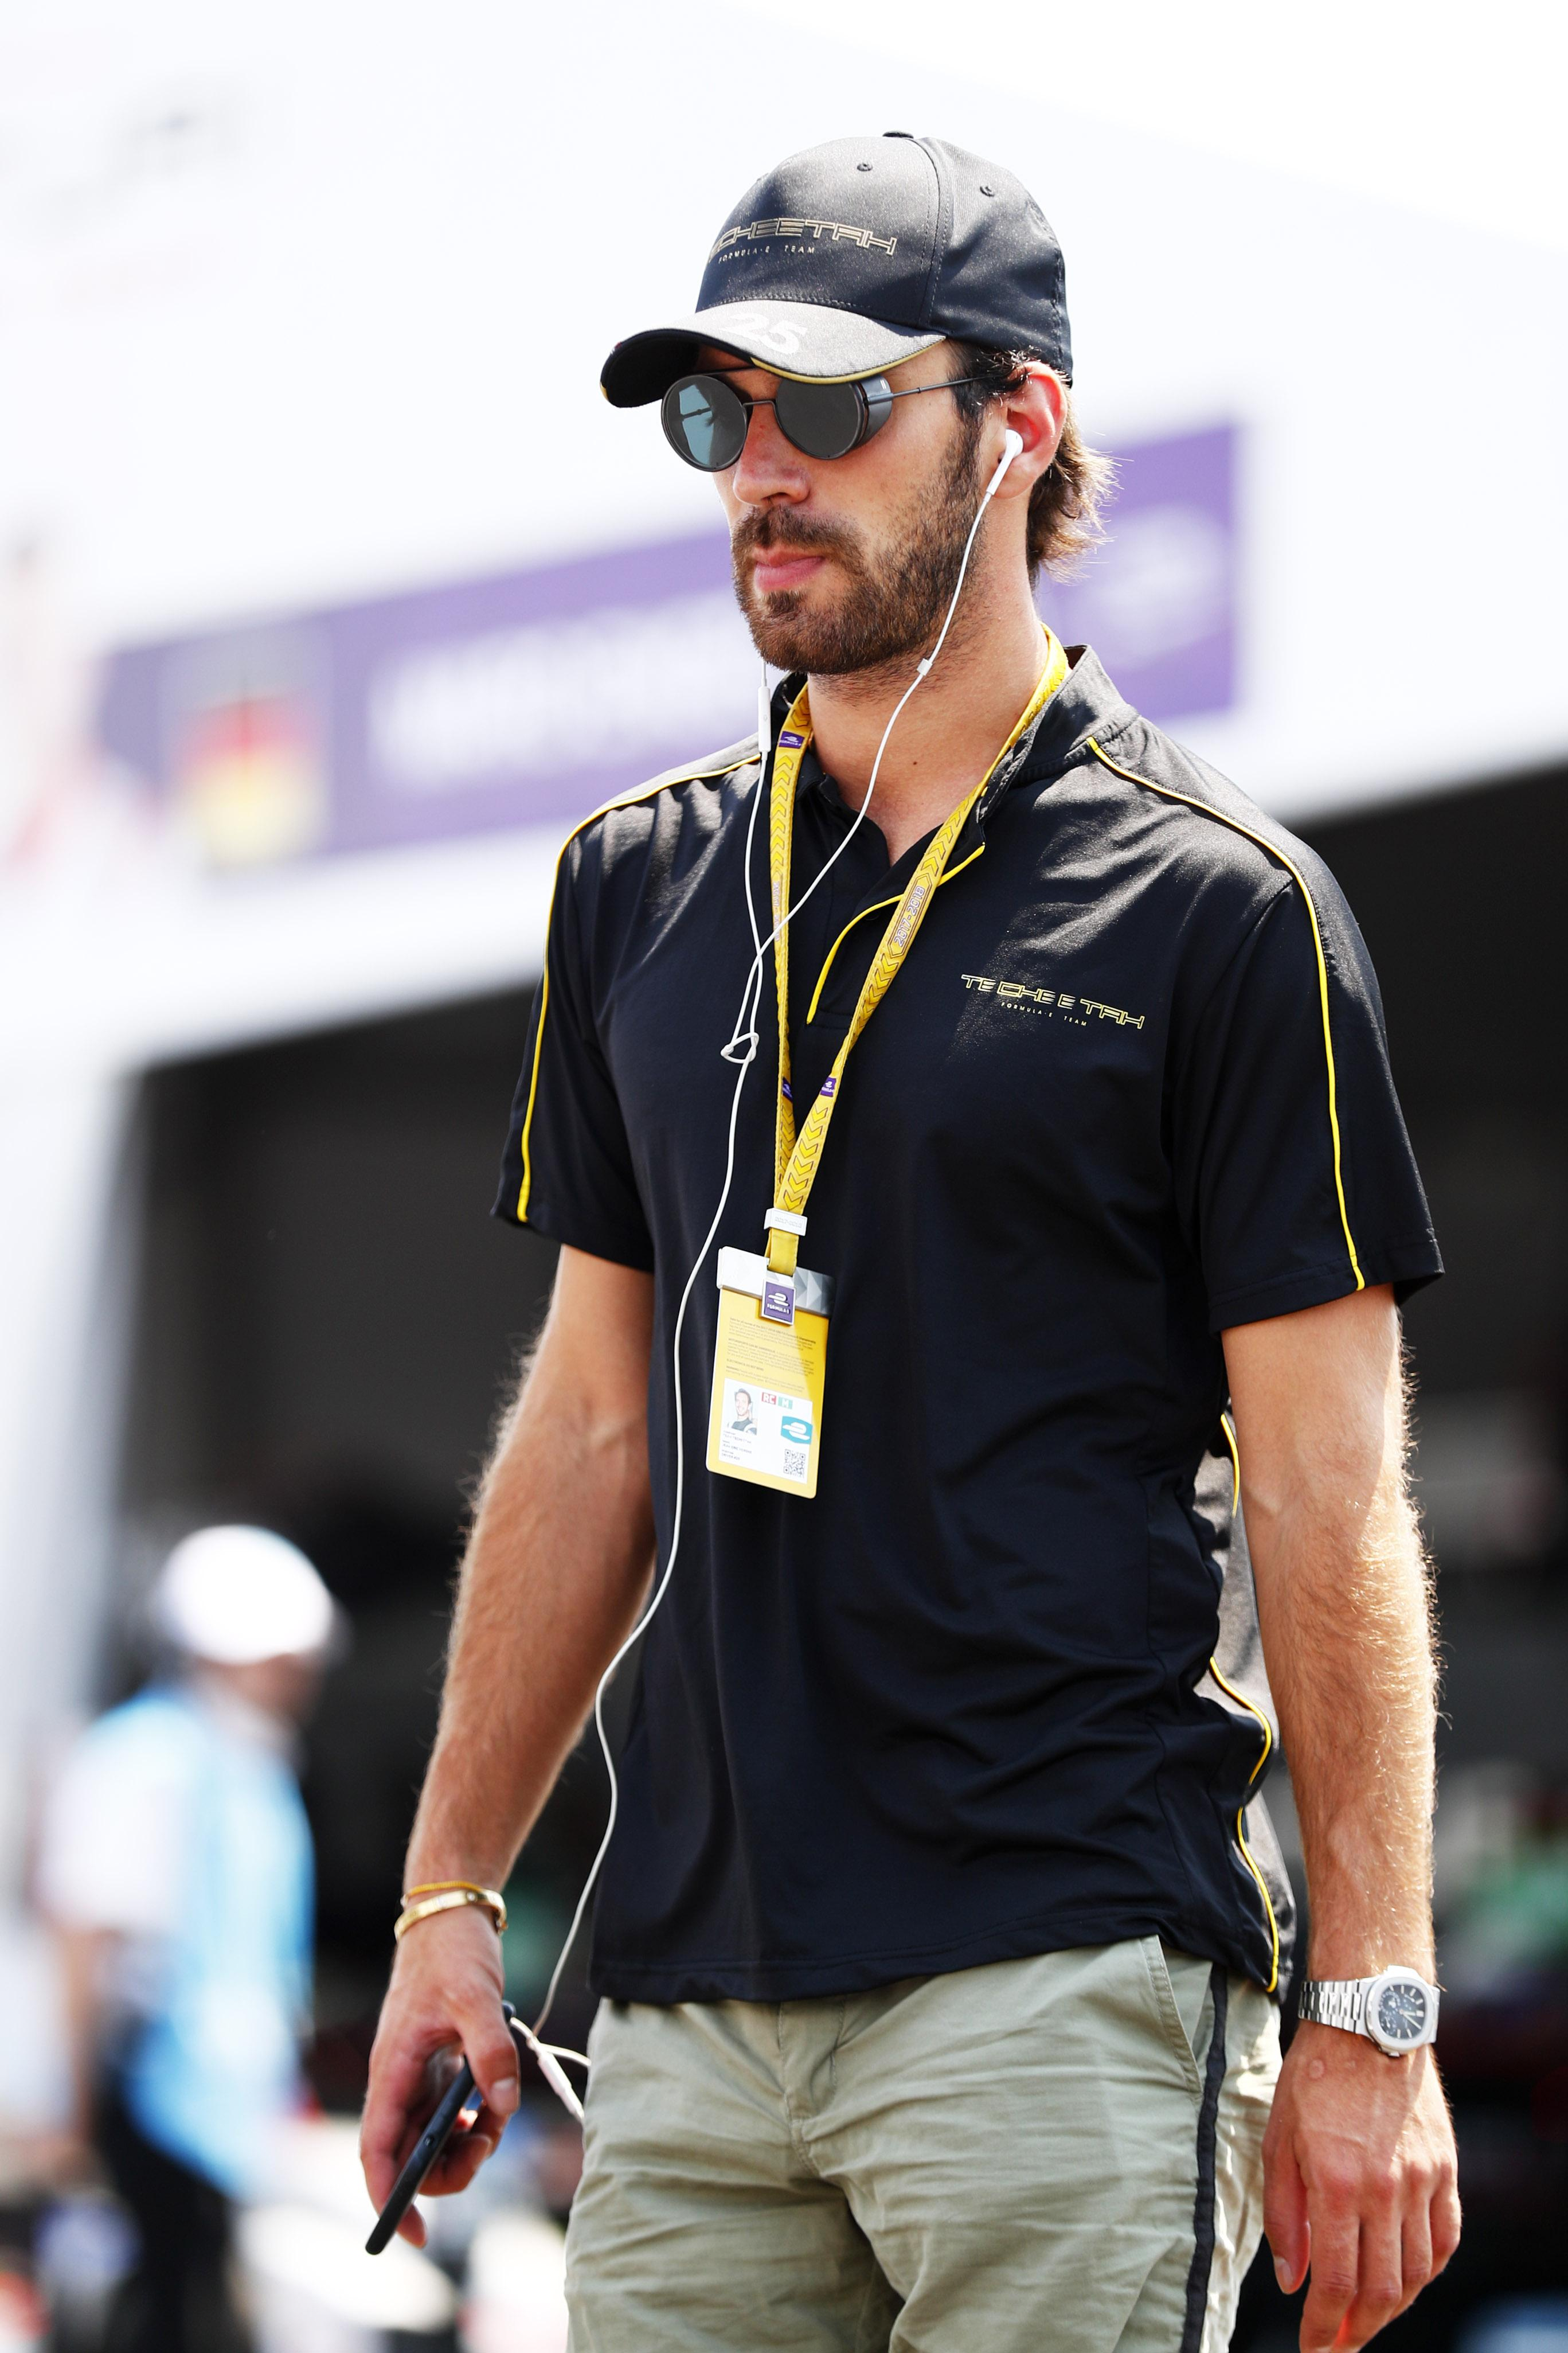 Jean Eric-Vergne leads the championship ahead of the final weekend of the season